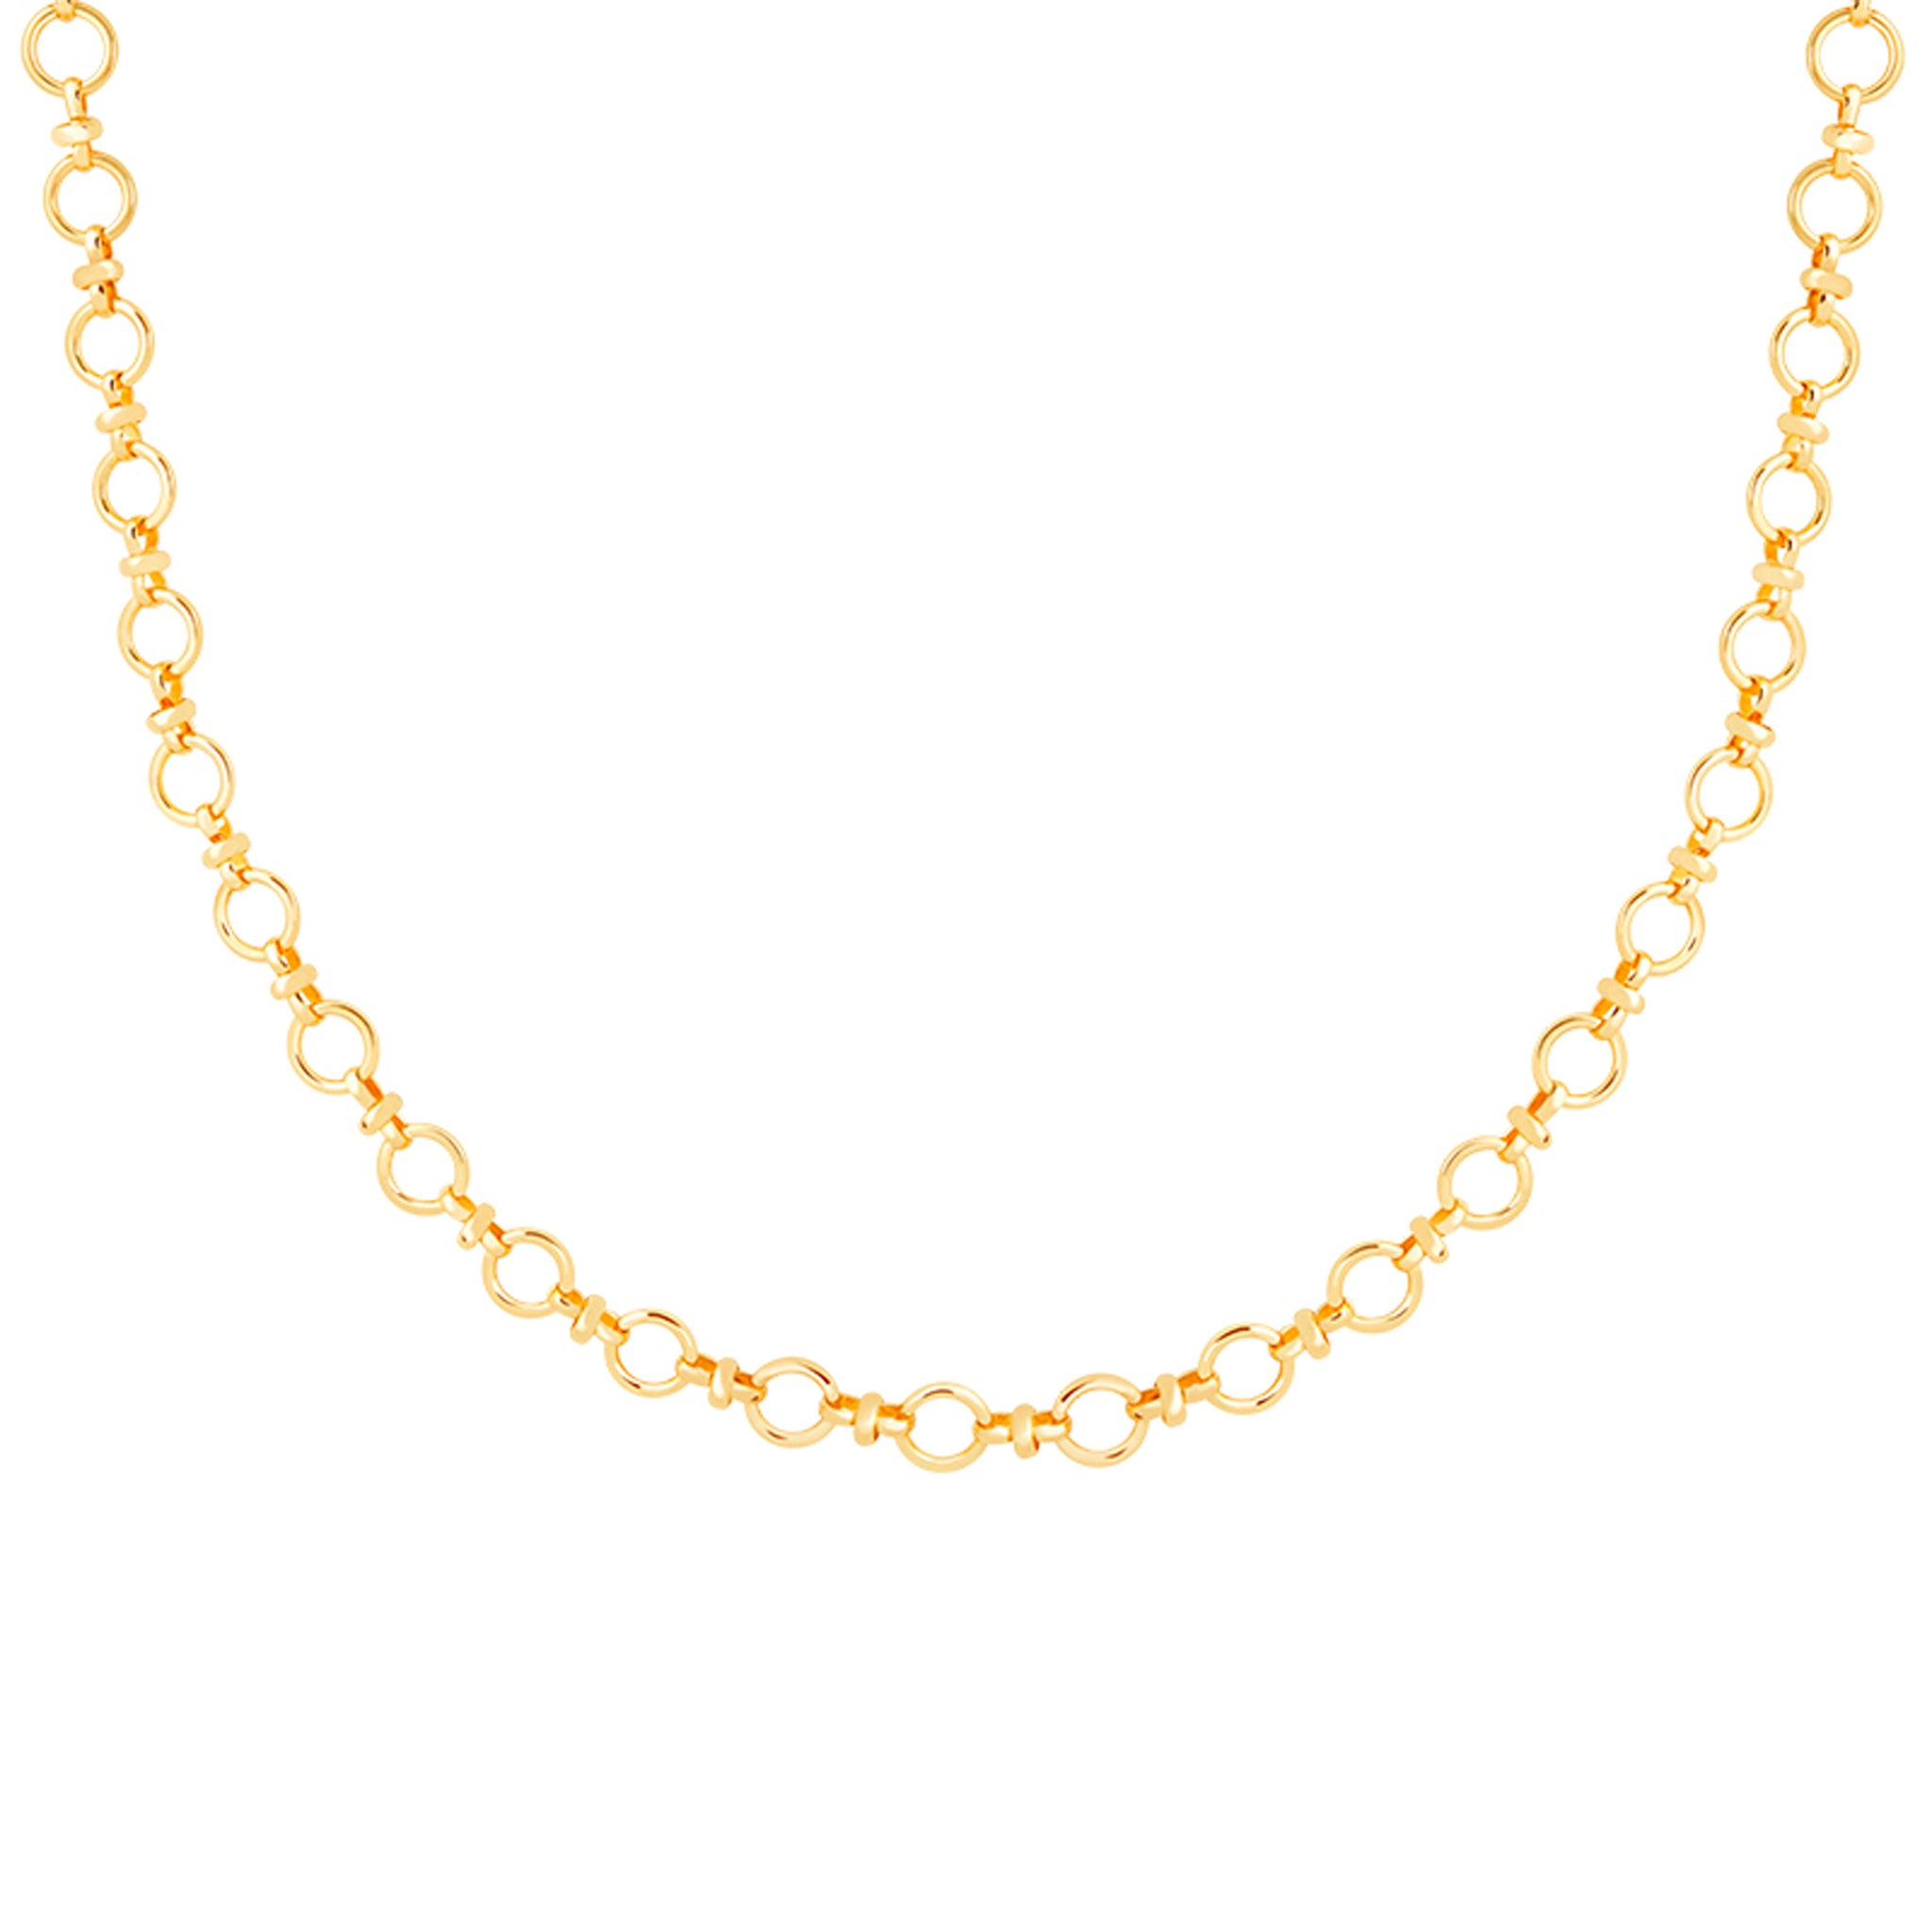 Circle Link Chain Necklace in Gold